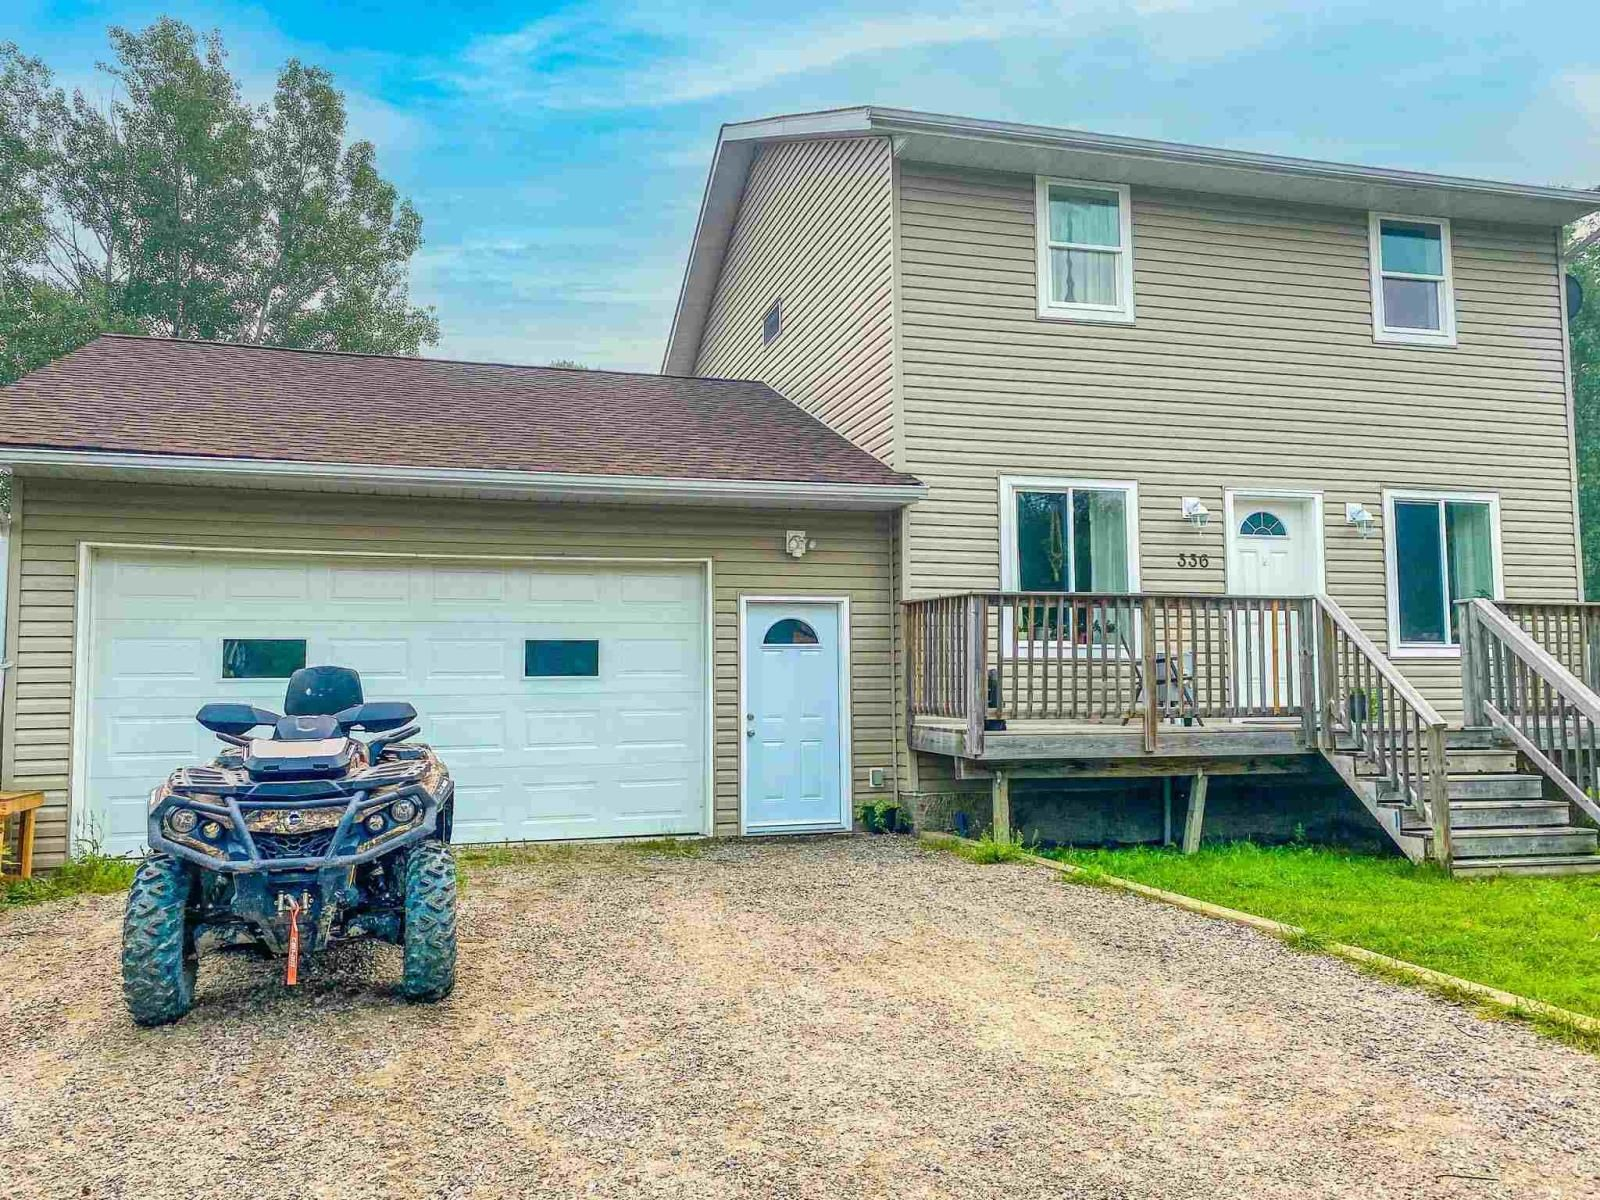 Main Photo: 336 Howey Street in Red Lake: House for sale : MLS®# TB212226